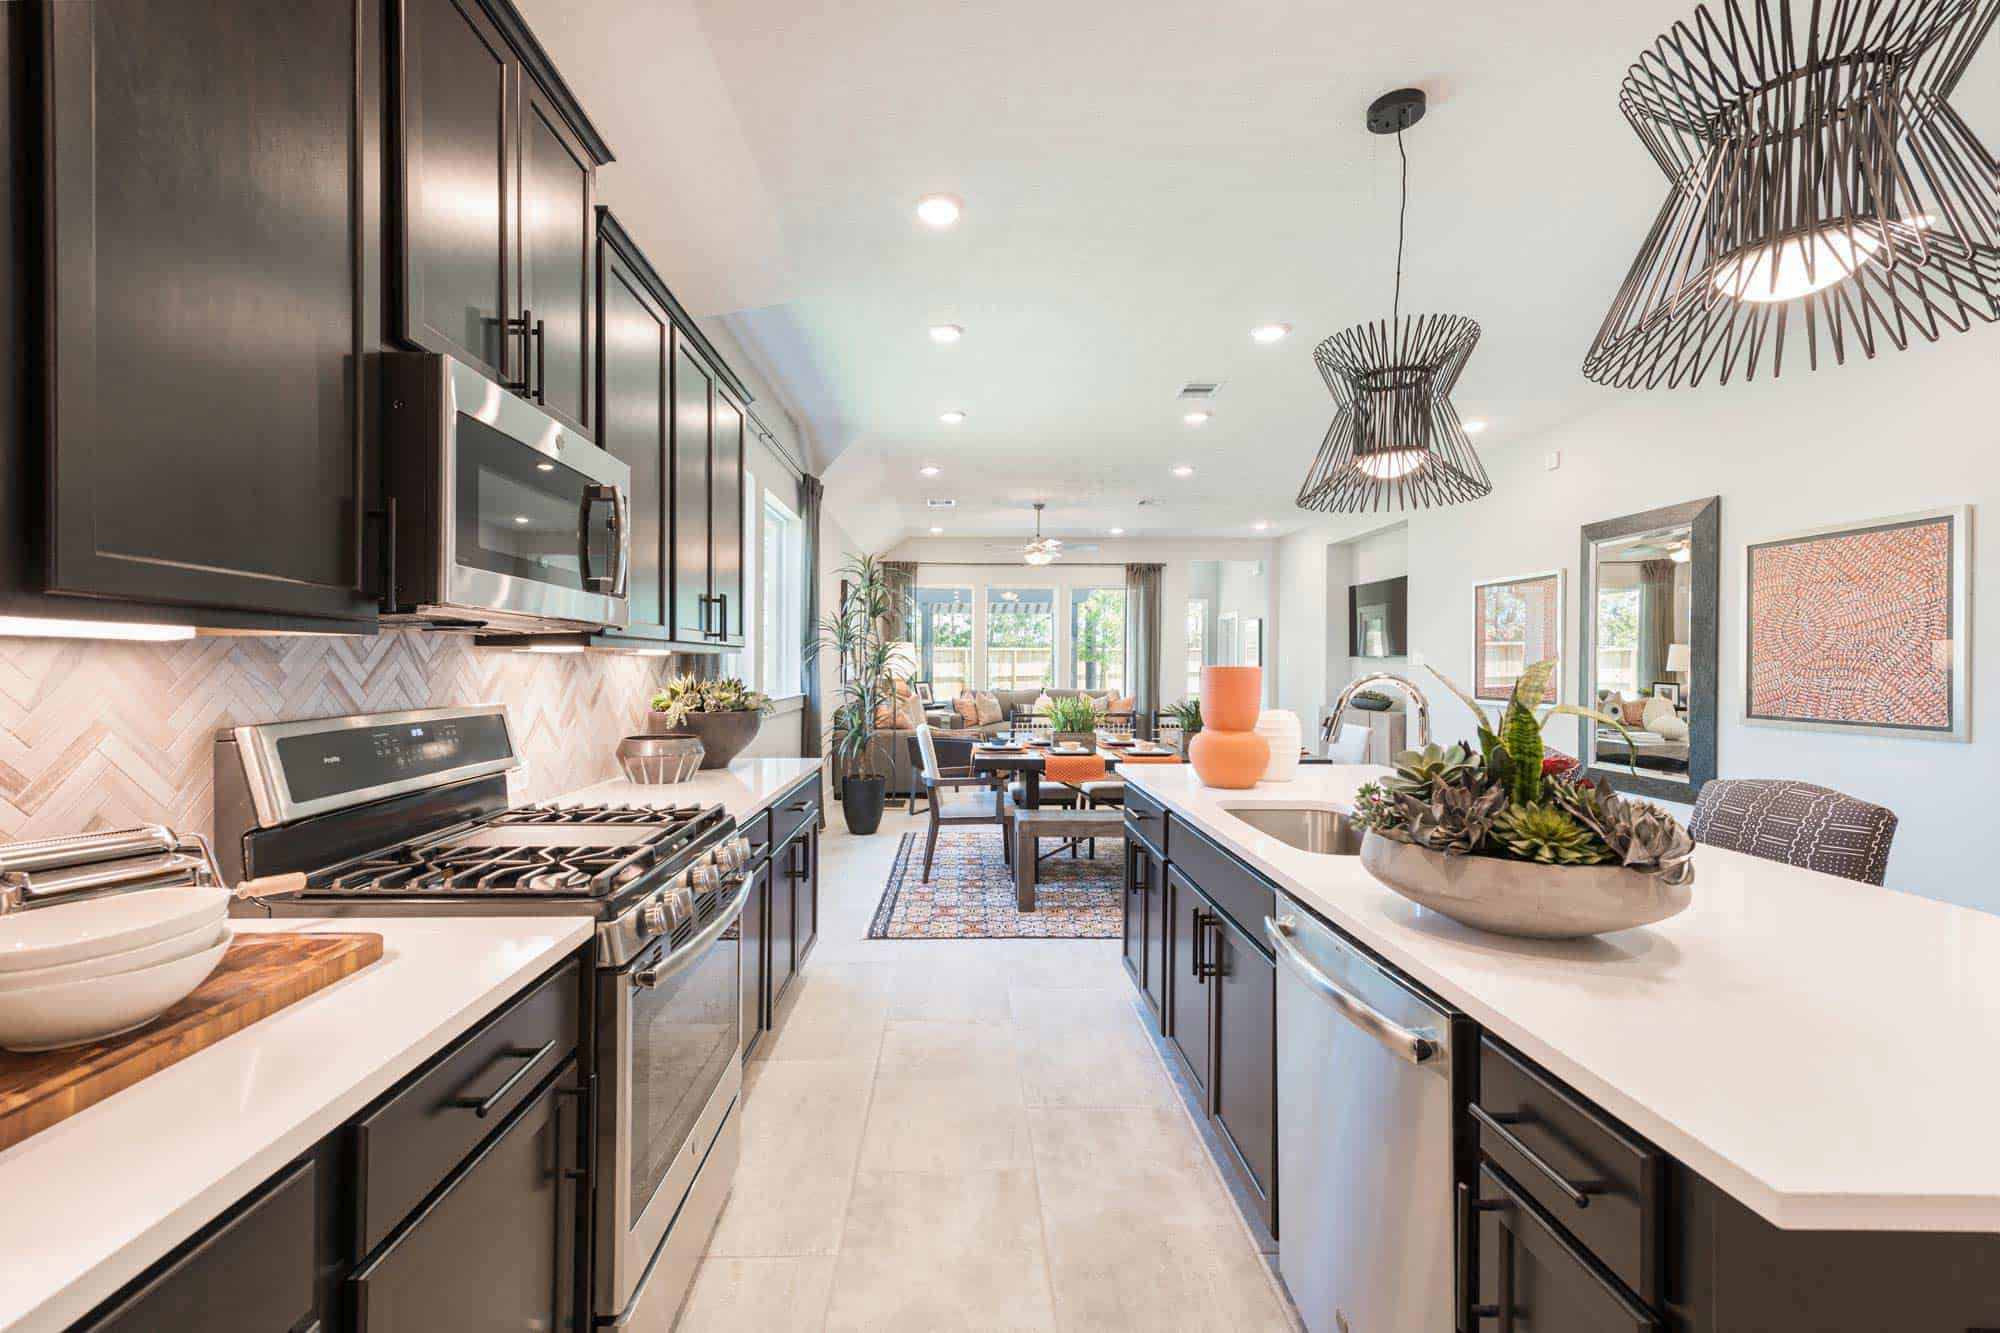 Kitchen featured in the Harrier By Tri Pointe Homes in Houston, TX